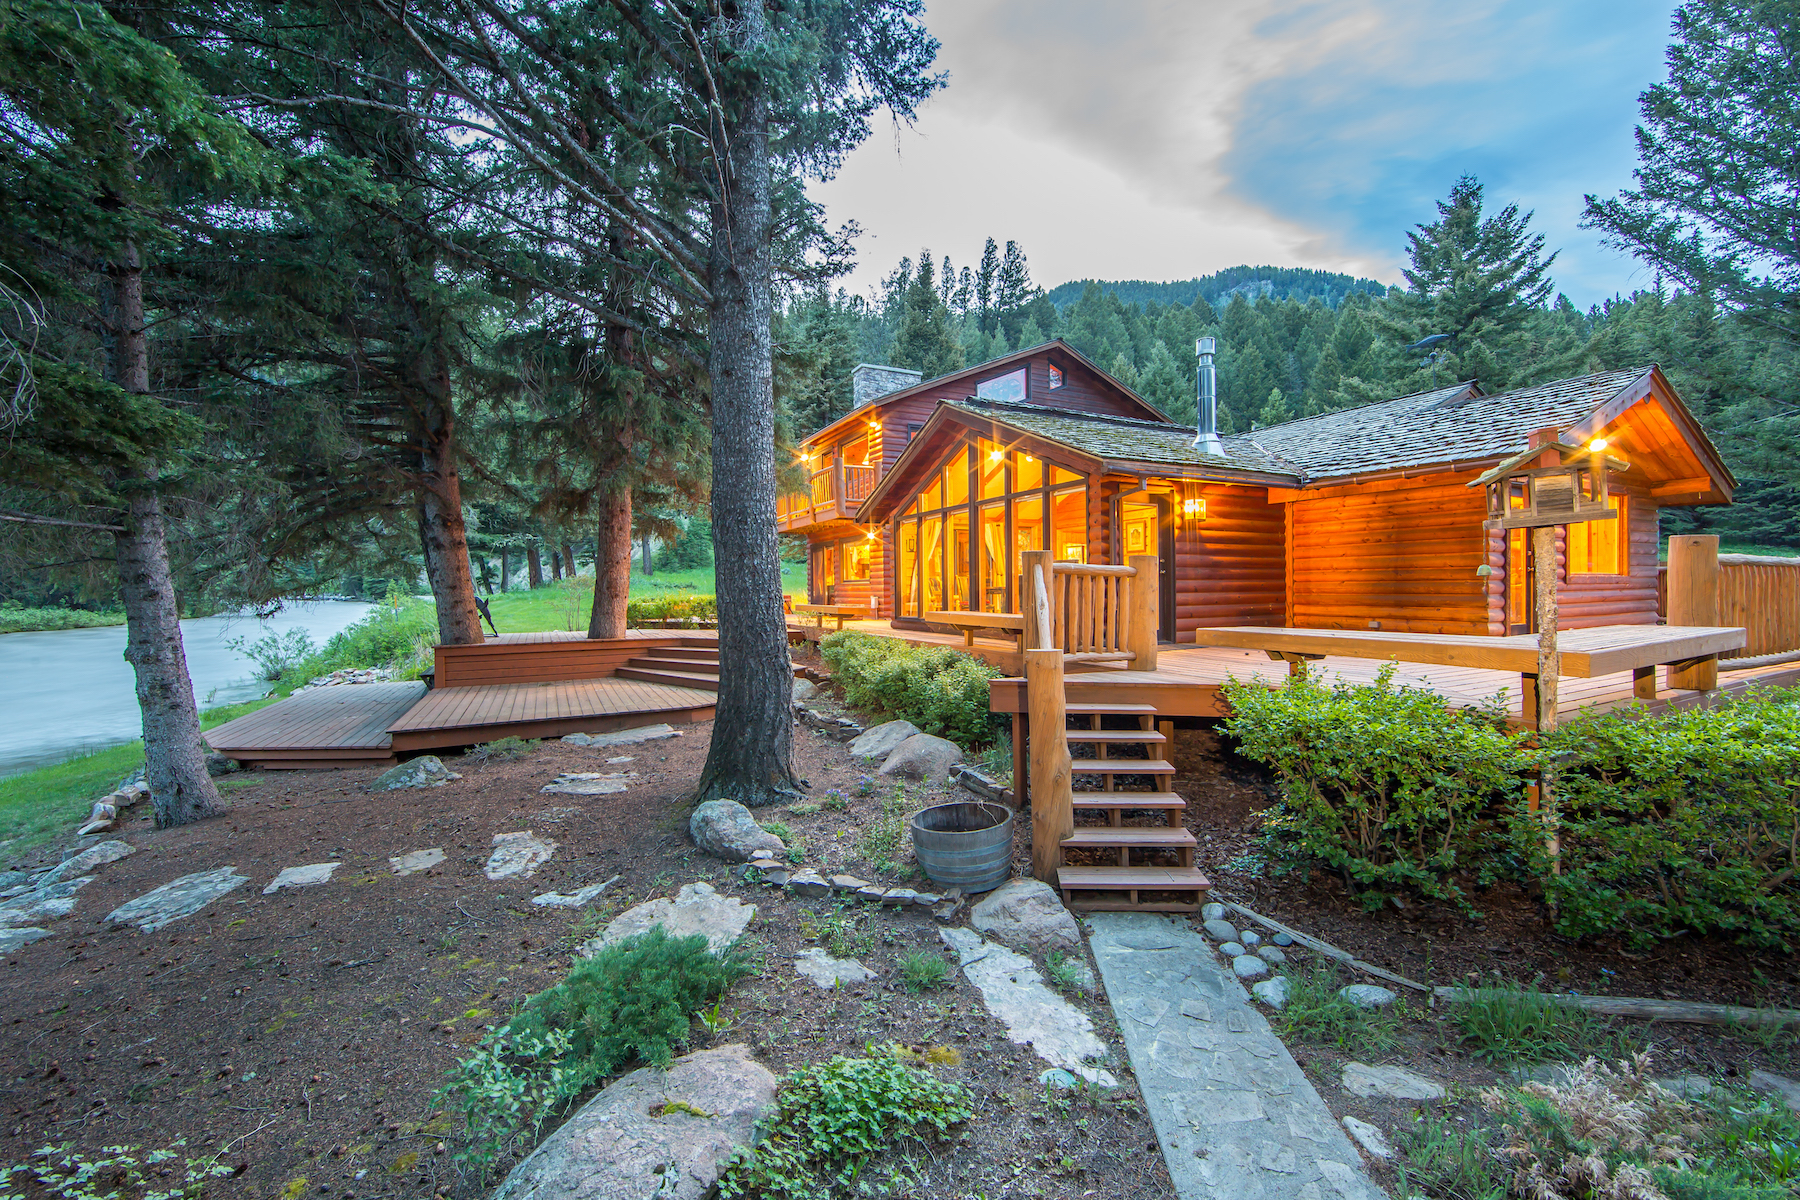 Single Family Home for Sale at Gallatin Canyon Cabin 50365 Gallatin Road Big Sky, Montana, 59716 United States